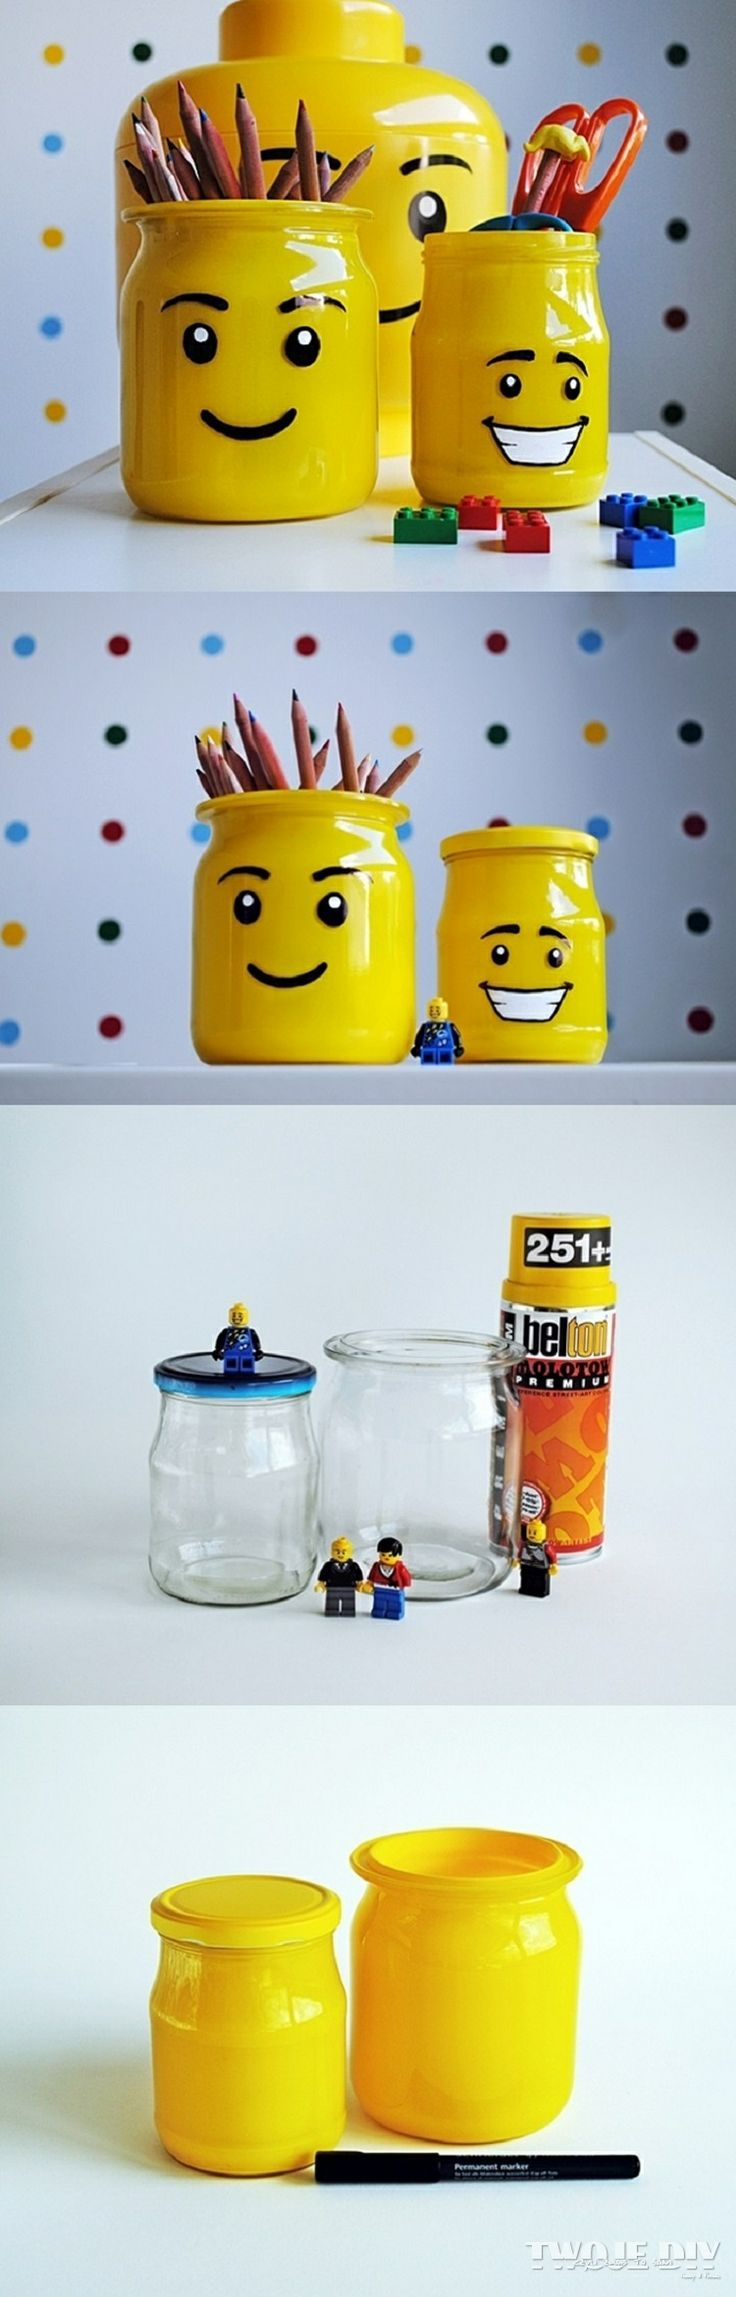 lego faces - DIY pencil cases